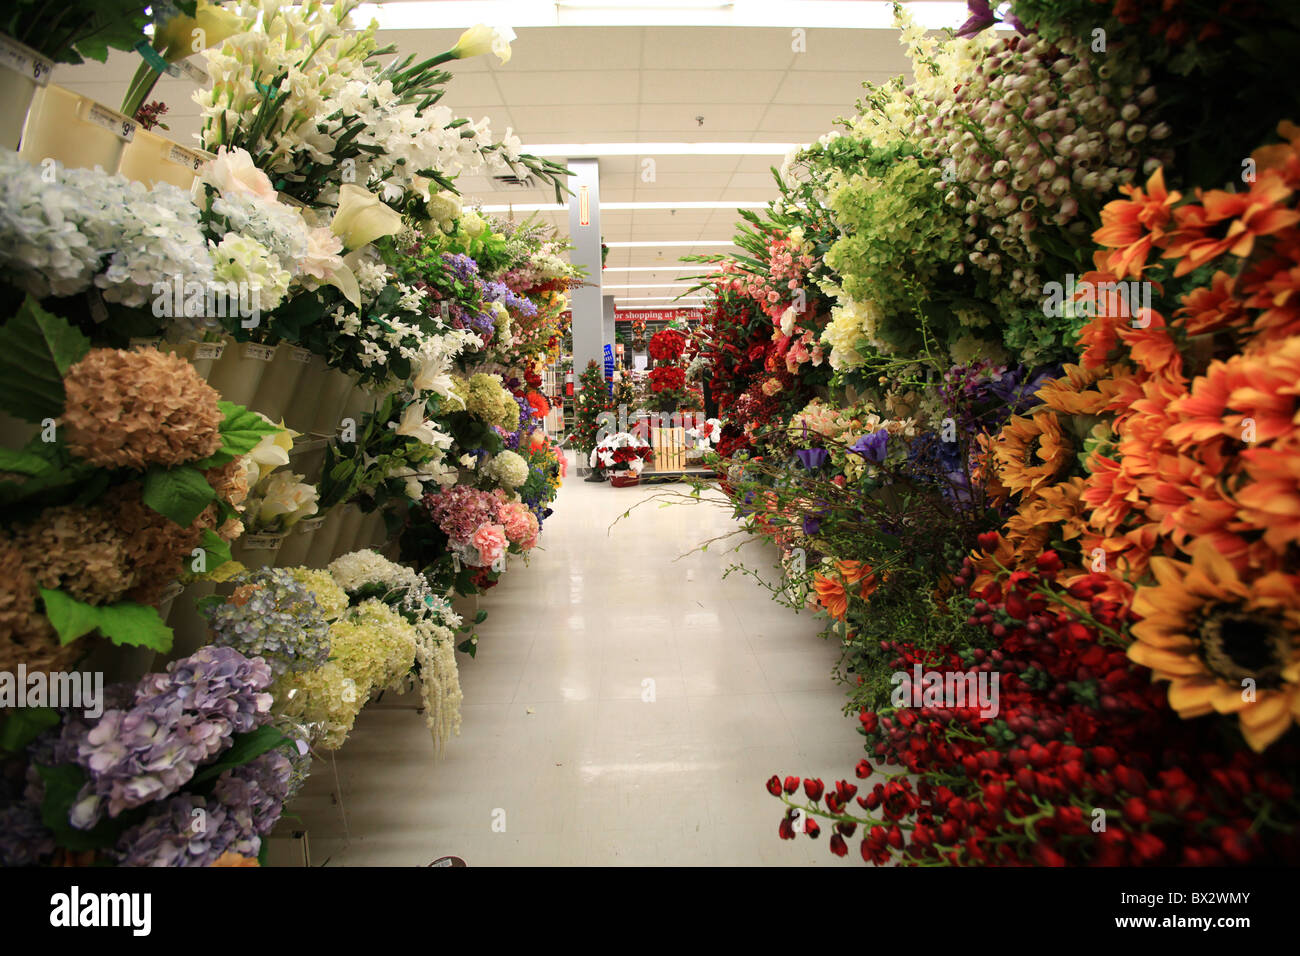 Silk Flowers Sale Michaels Store Stock Photos & Silk Flowers Sale ...